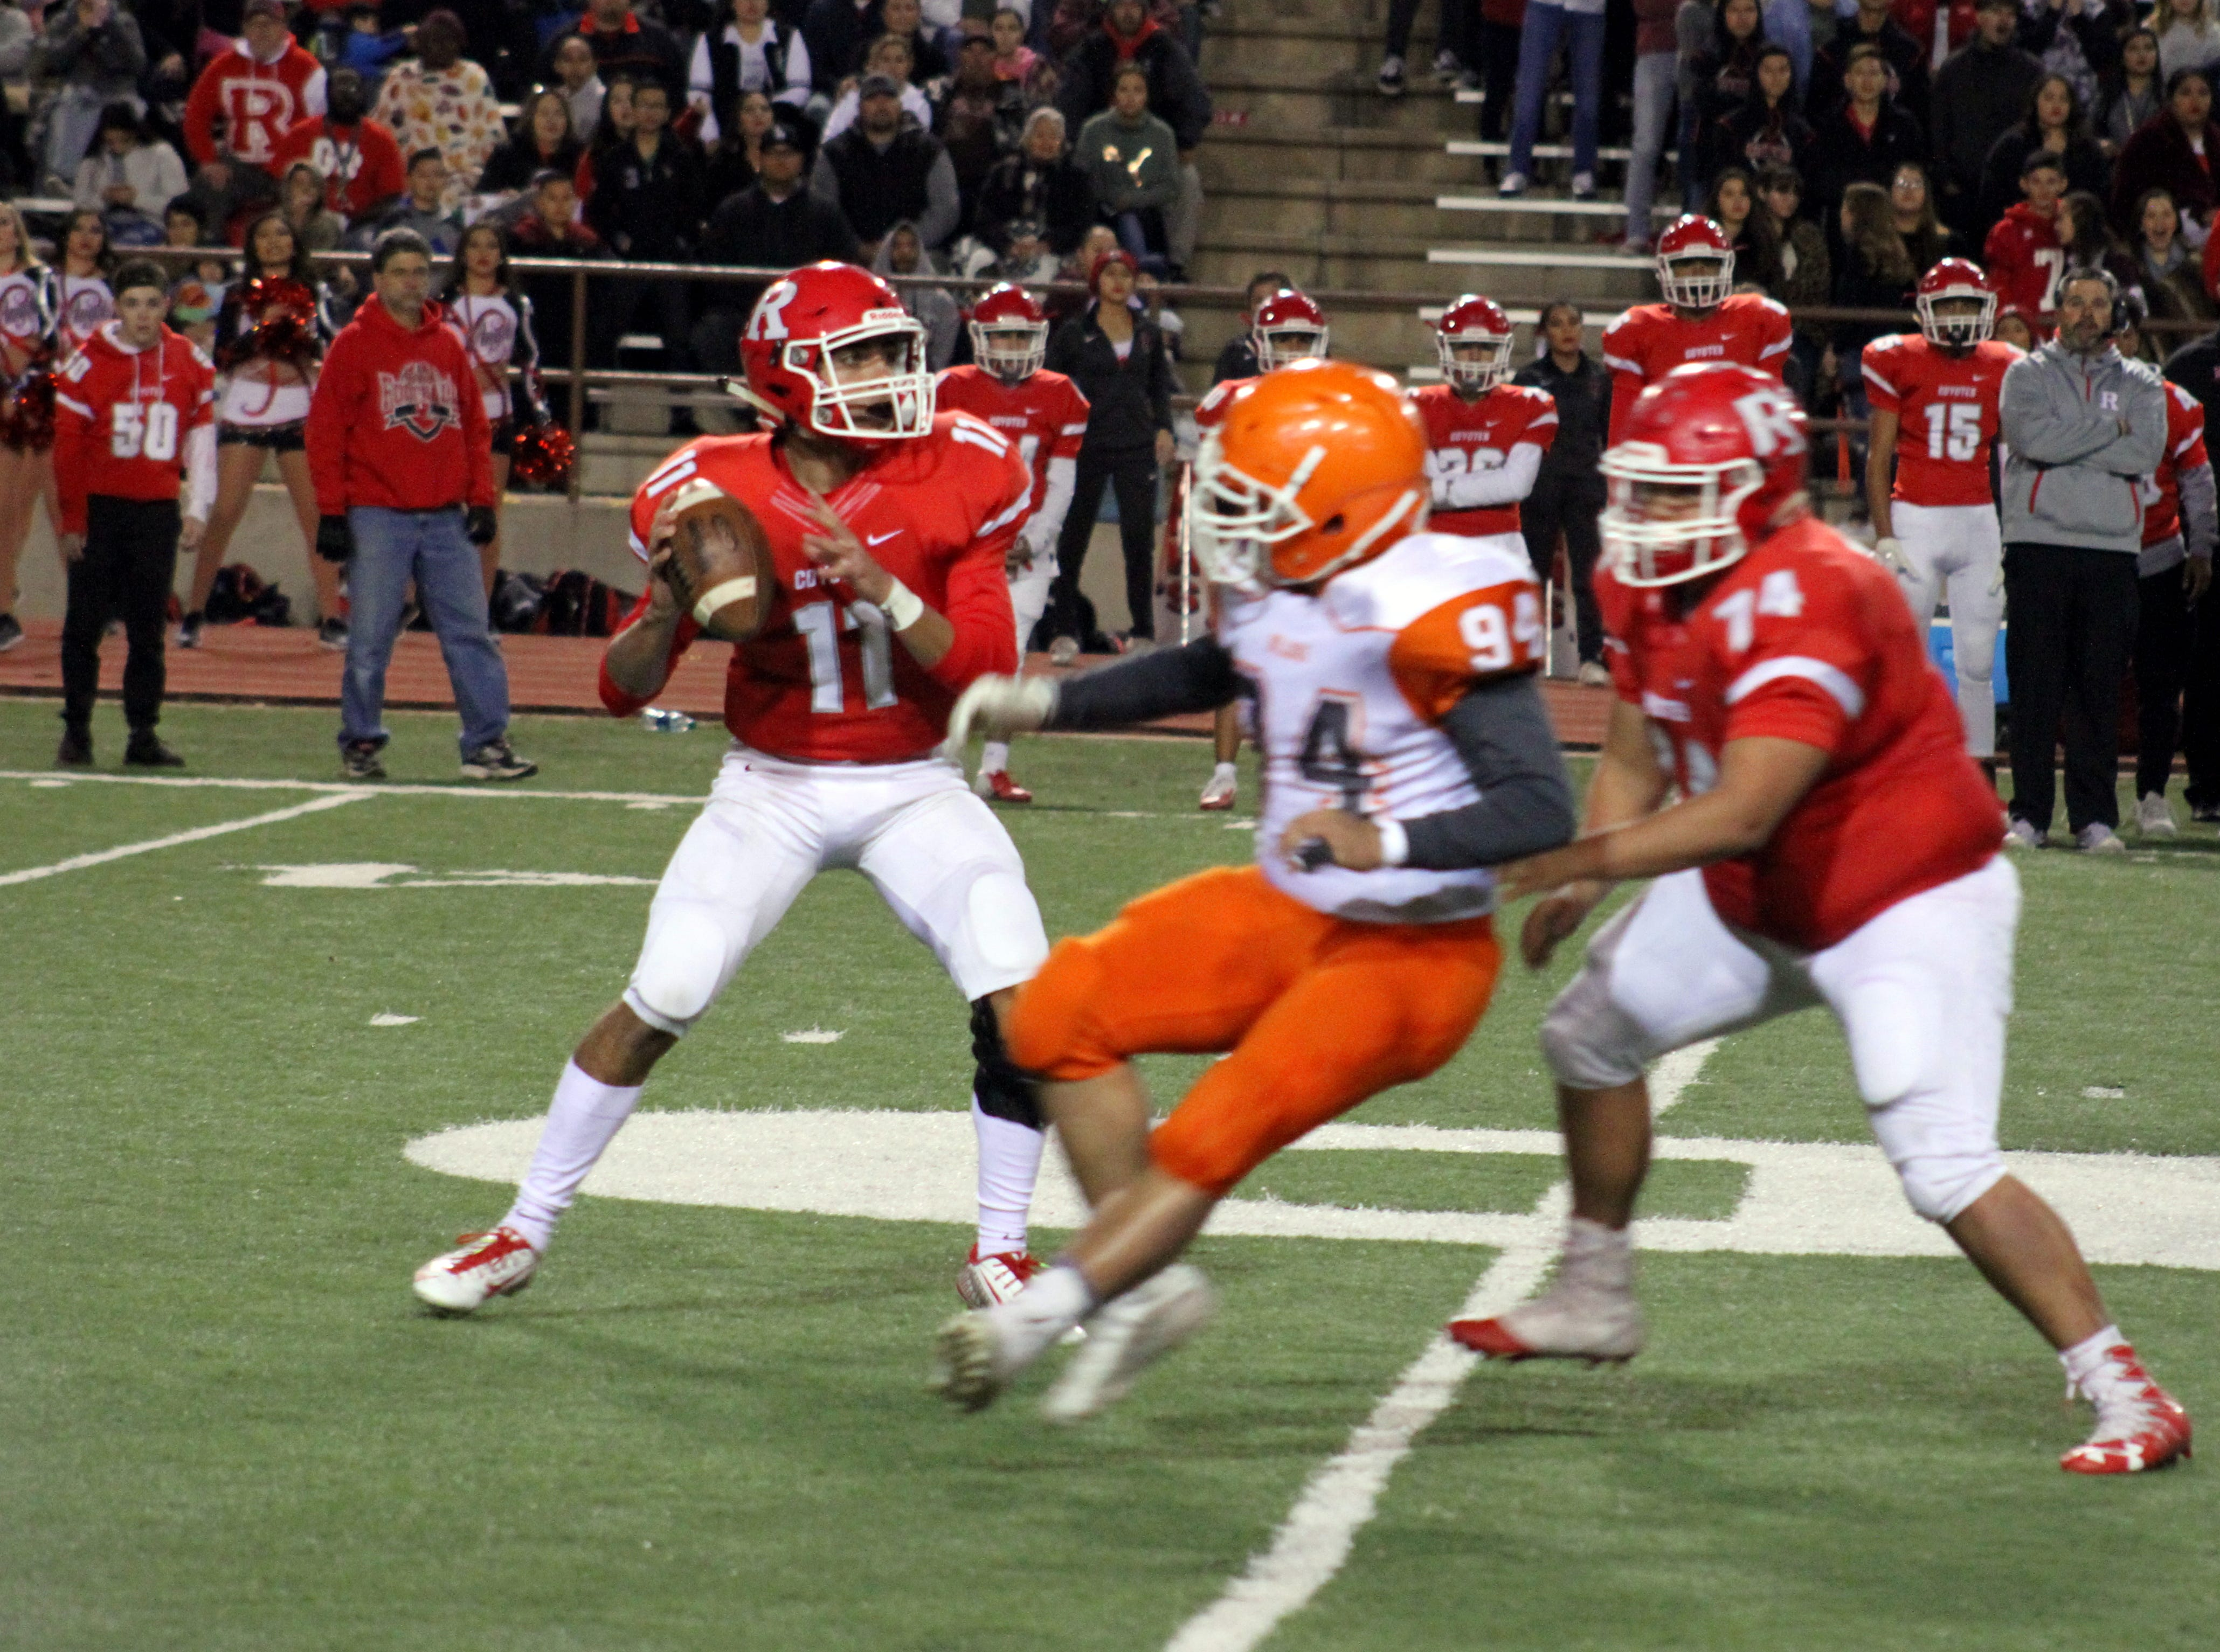 Roswell quarterback Ethan Valenzuela looks to throw while Artesia's Darian Fernandez (94) tries a spin move for a sack during Friday's Class 5A semifinal game.